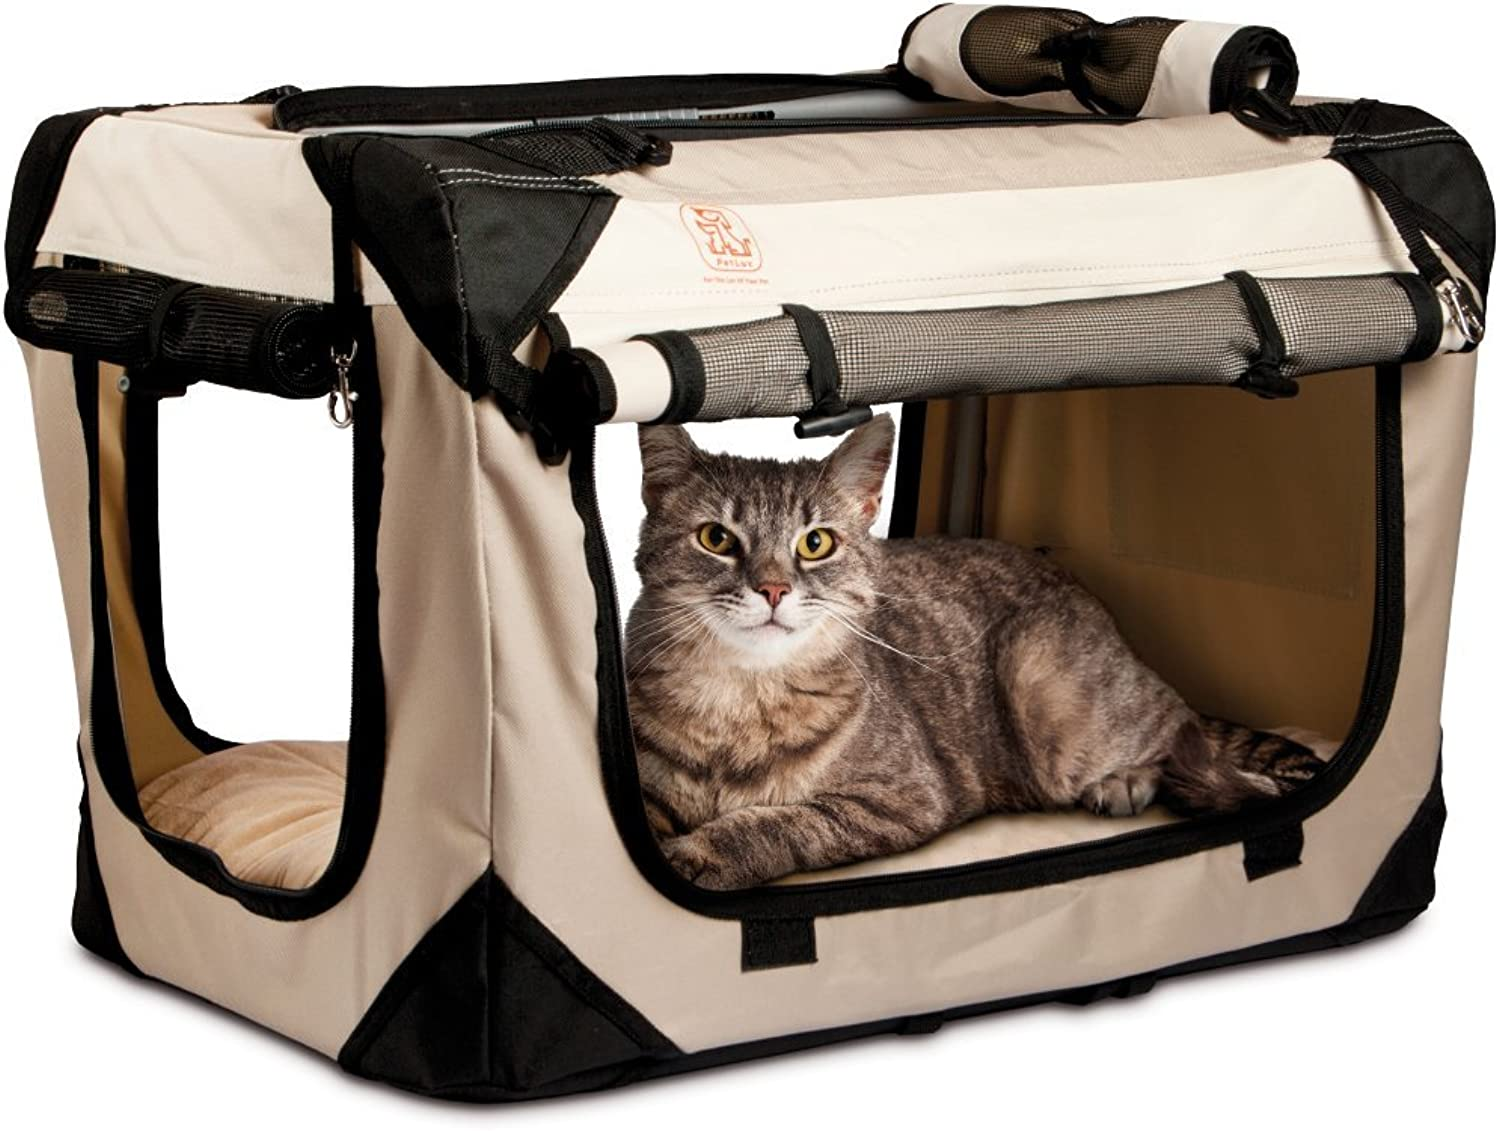 PetLuv Soothing  Happy Cat  Medium  Large Premium Soft Sided Cat Carrier & Travel Crate w  Locking Zippers Plush Nap Pillow 4X Interior Room 4 Windows Sunroof Folds Flat Washable Reduces Anxiety